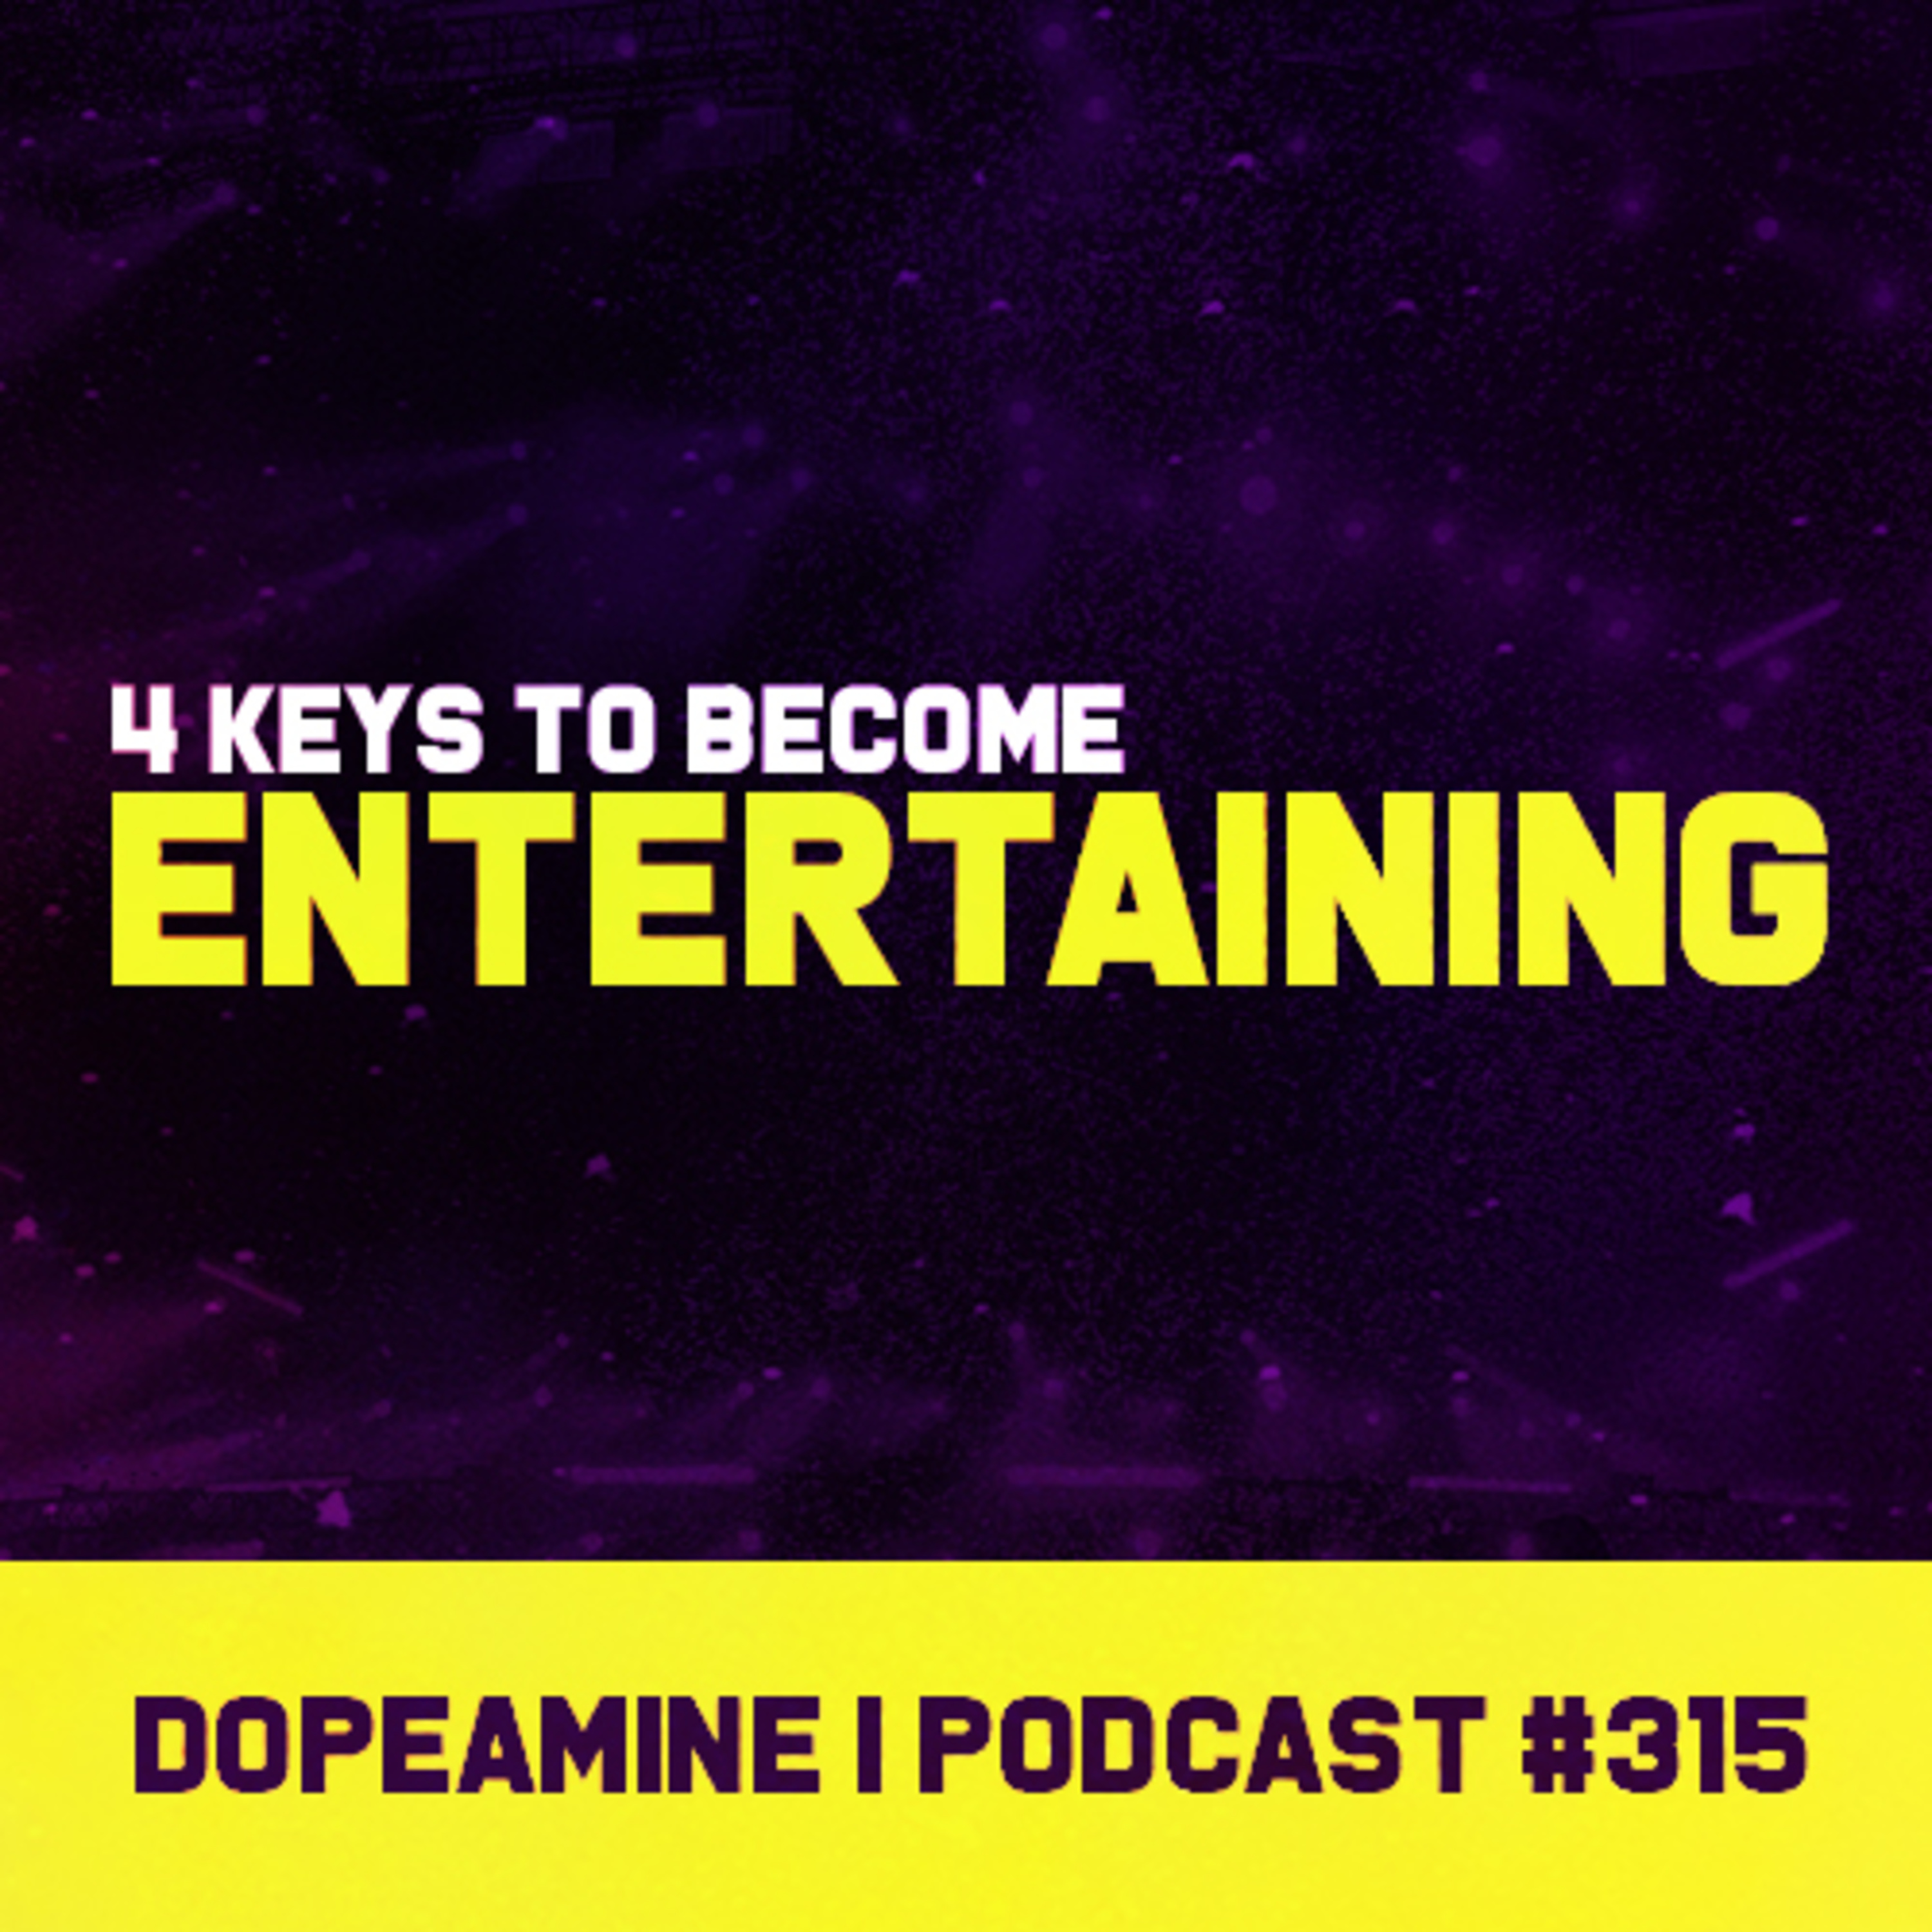 The 4 Keys to Become Entertaining